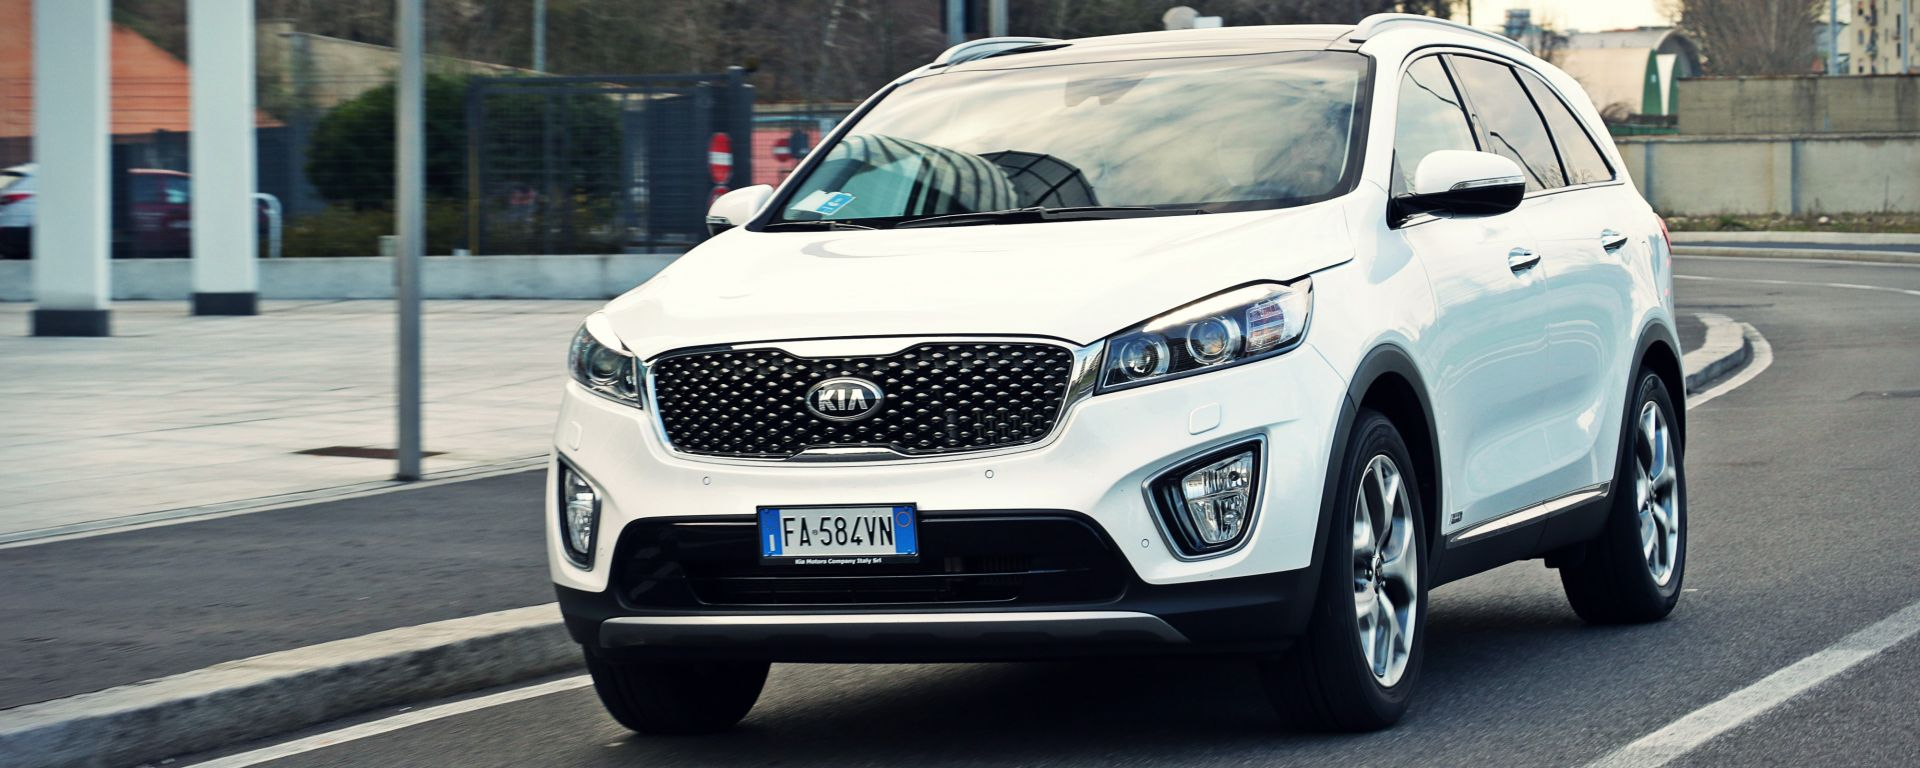 Kia Sorento 2.2 CRDi Feel Rebel